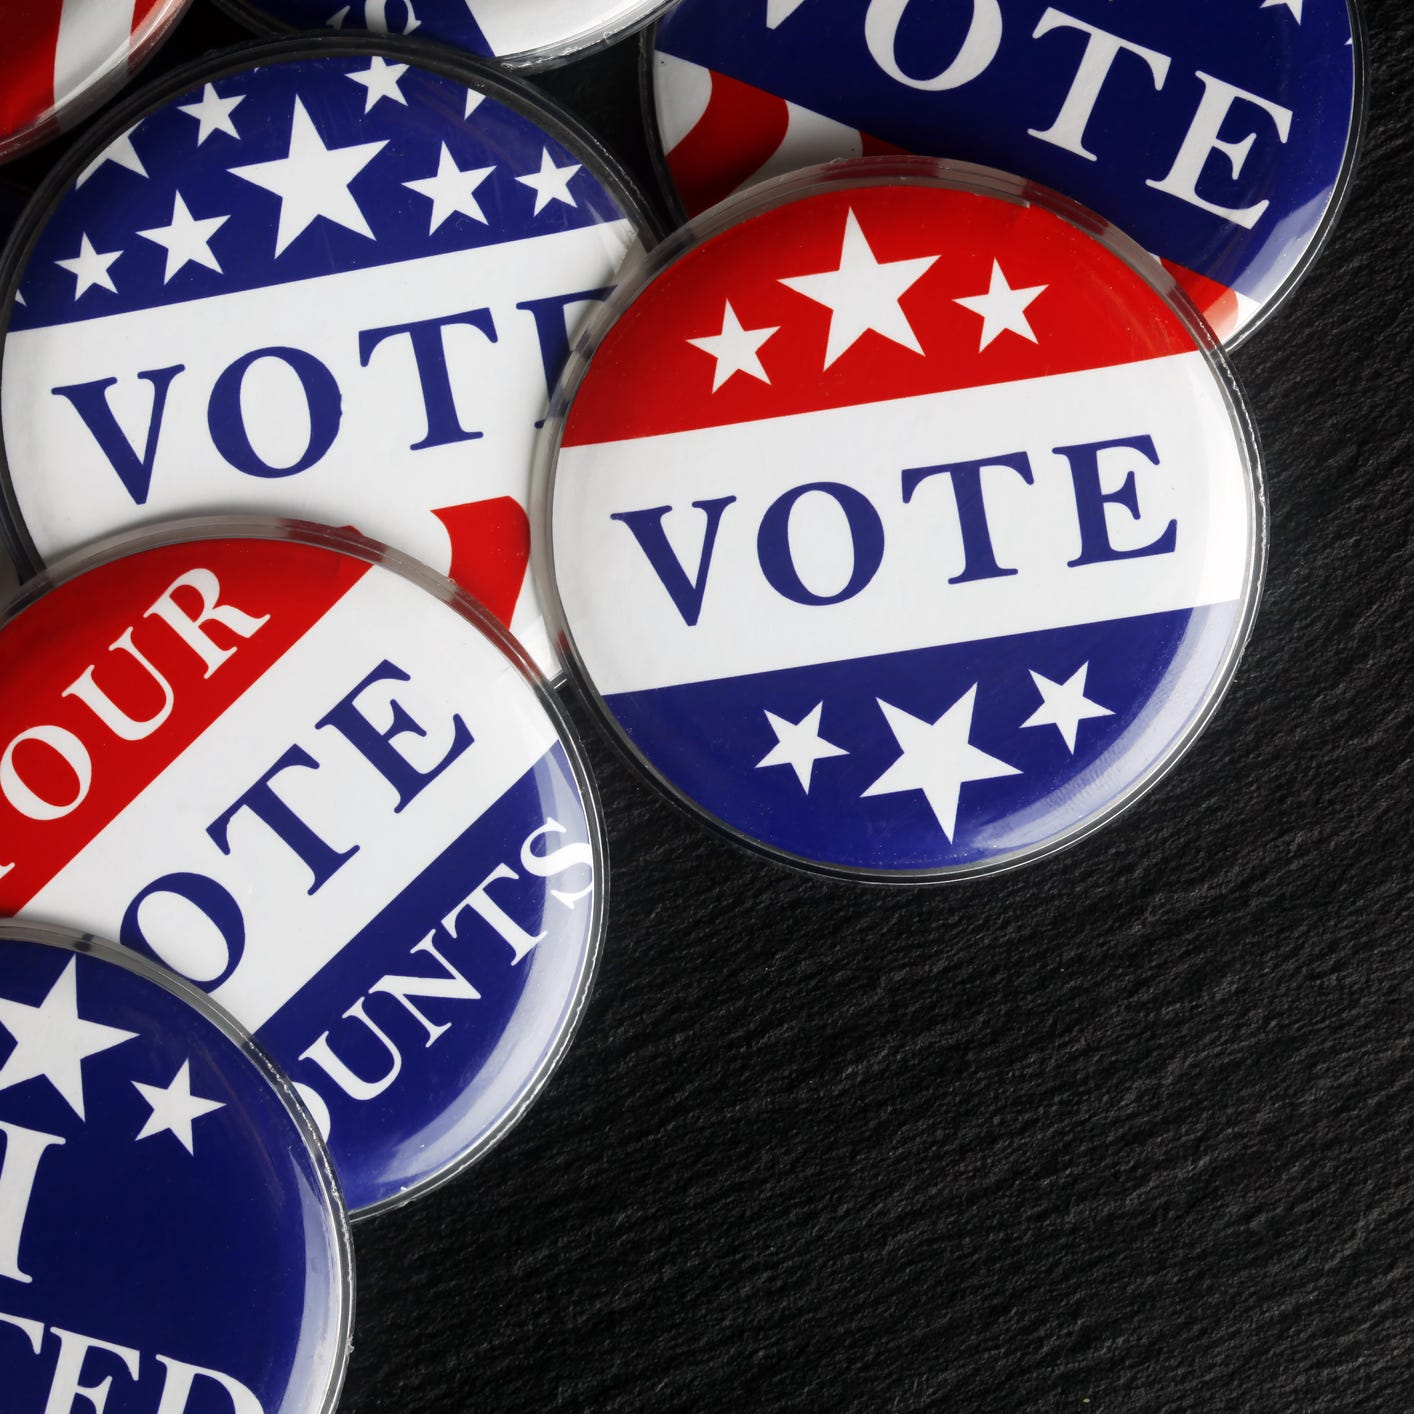 Arizona has violated federal voting-rights laws for more than two decades